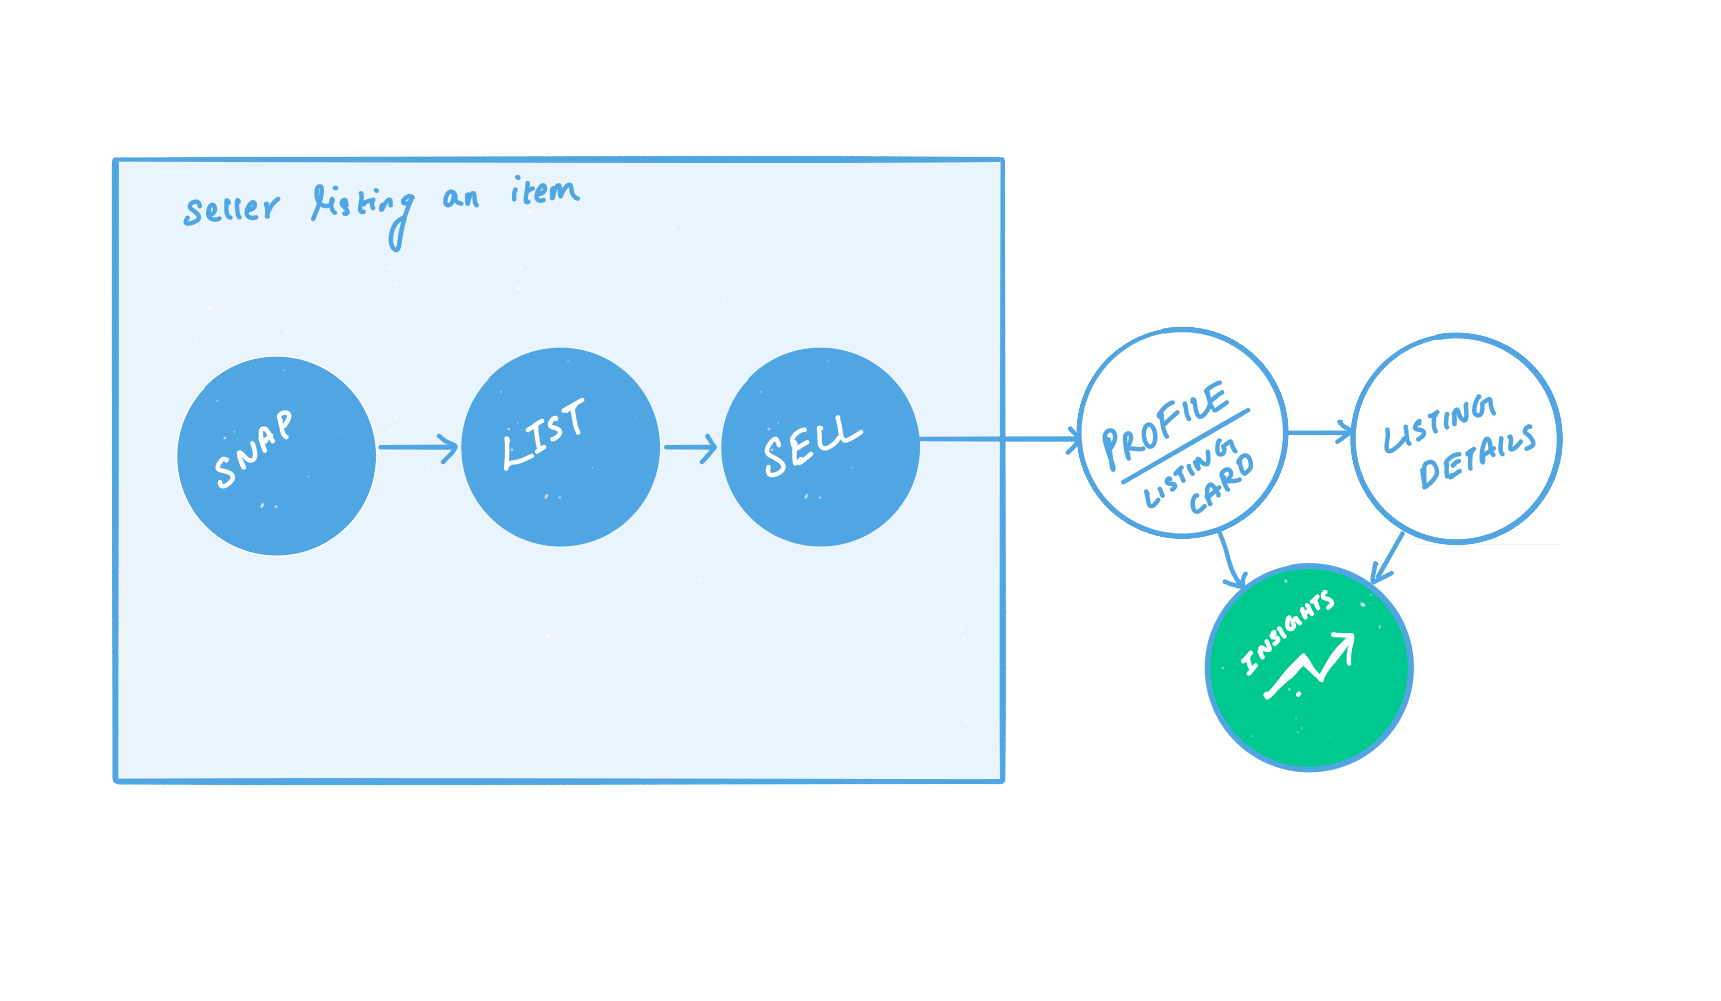 We plugged in Listing insights in the two obvious parts of the seller journey.